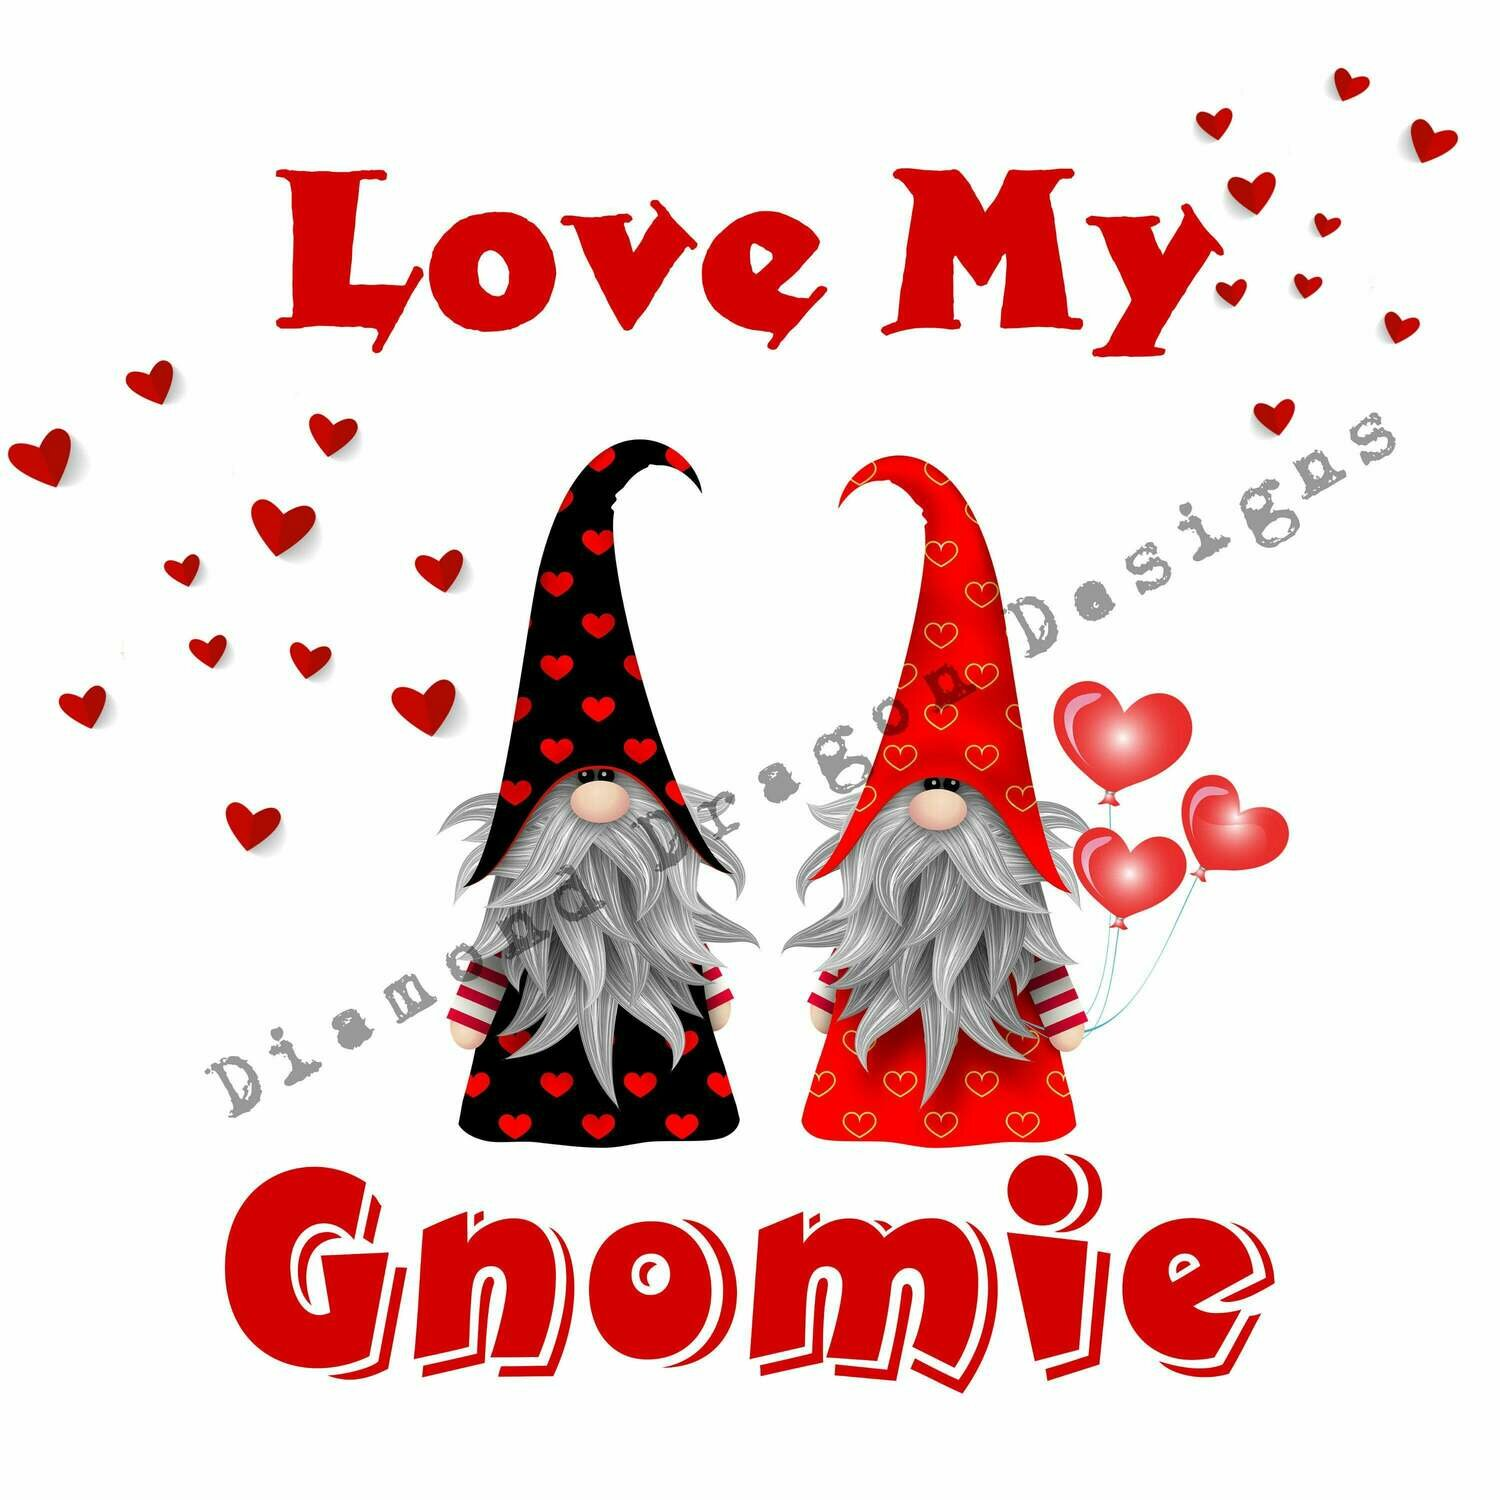 Gnomes - Valentines Gnomes, Love My Gnomie, Valentines Day, Friends, Best Friends, Quote, 2 Gnomes, Digital Image